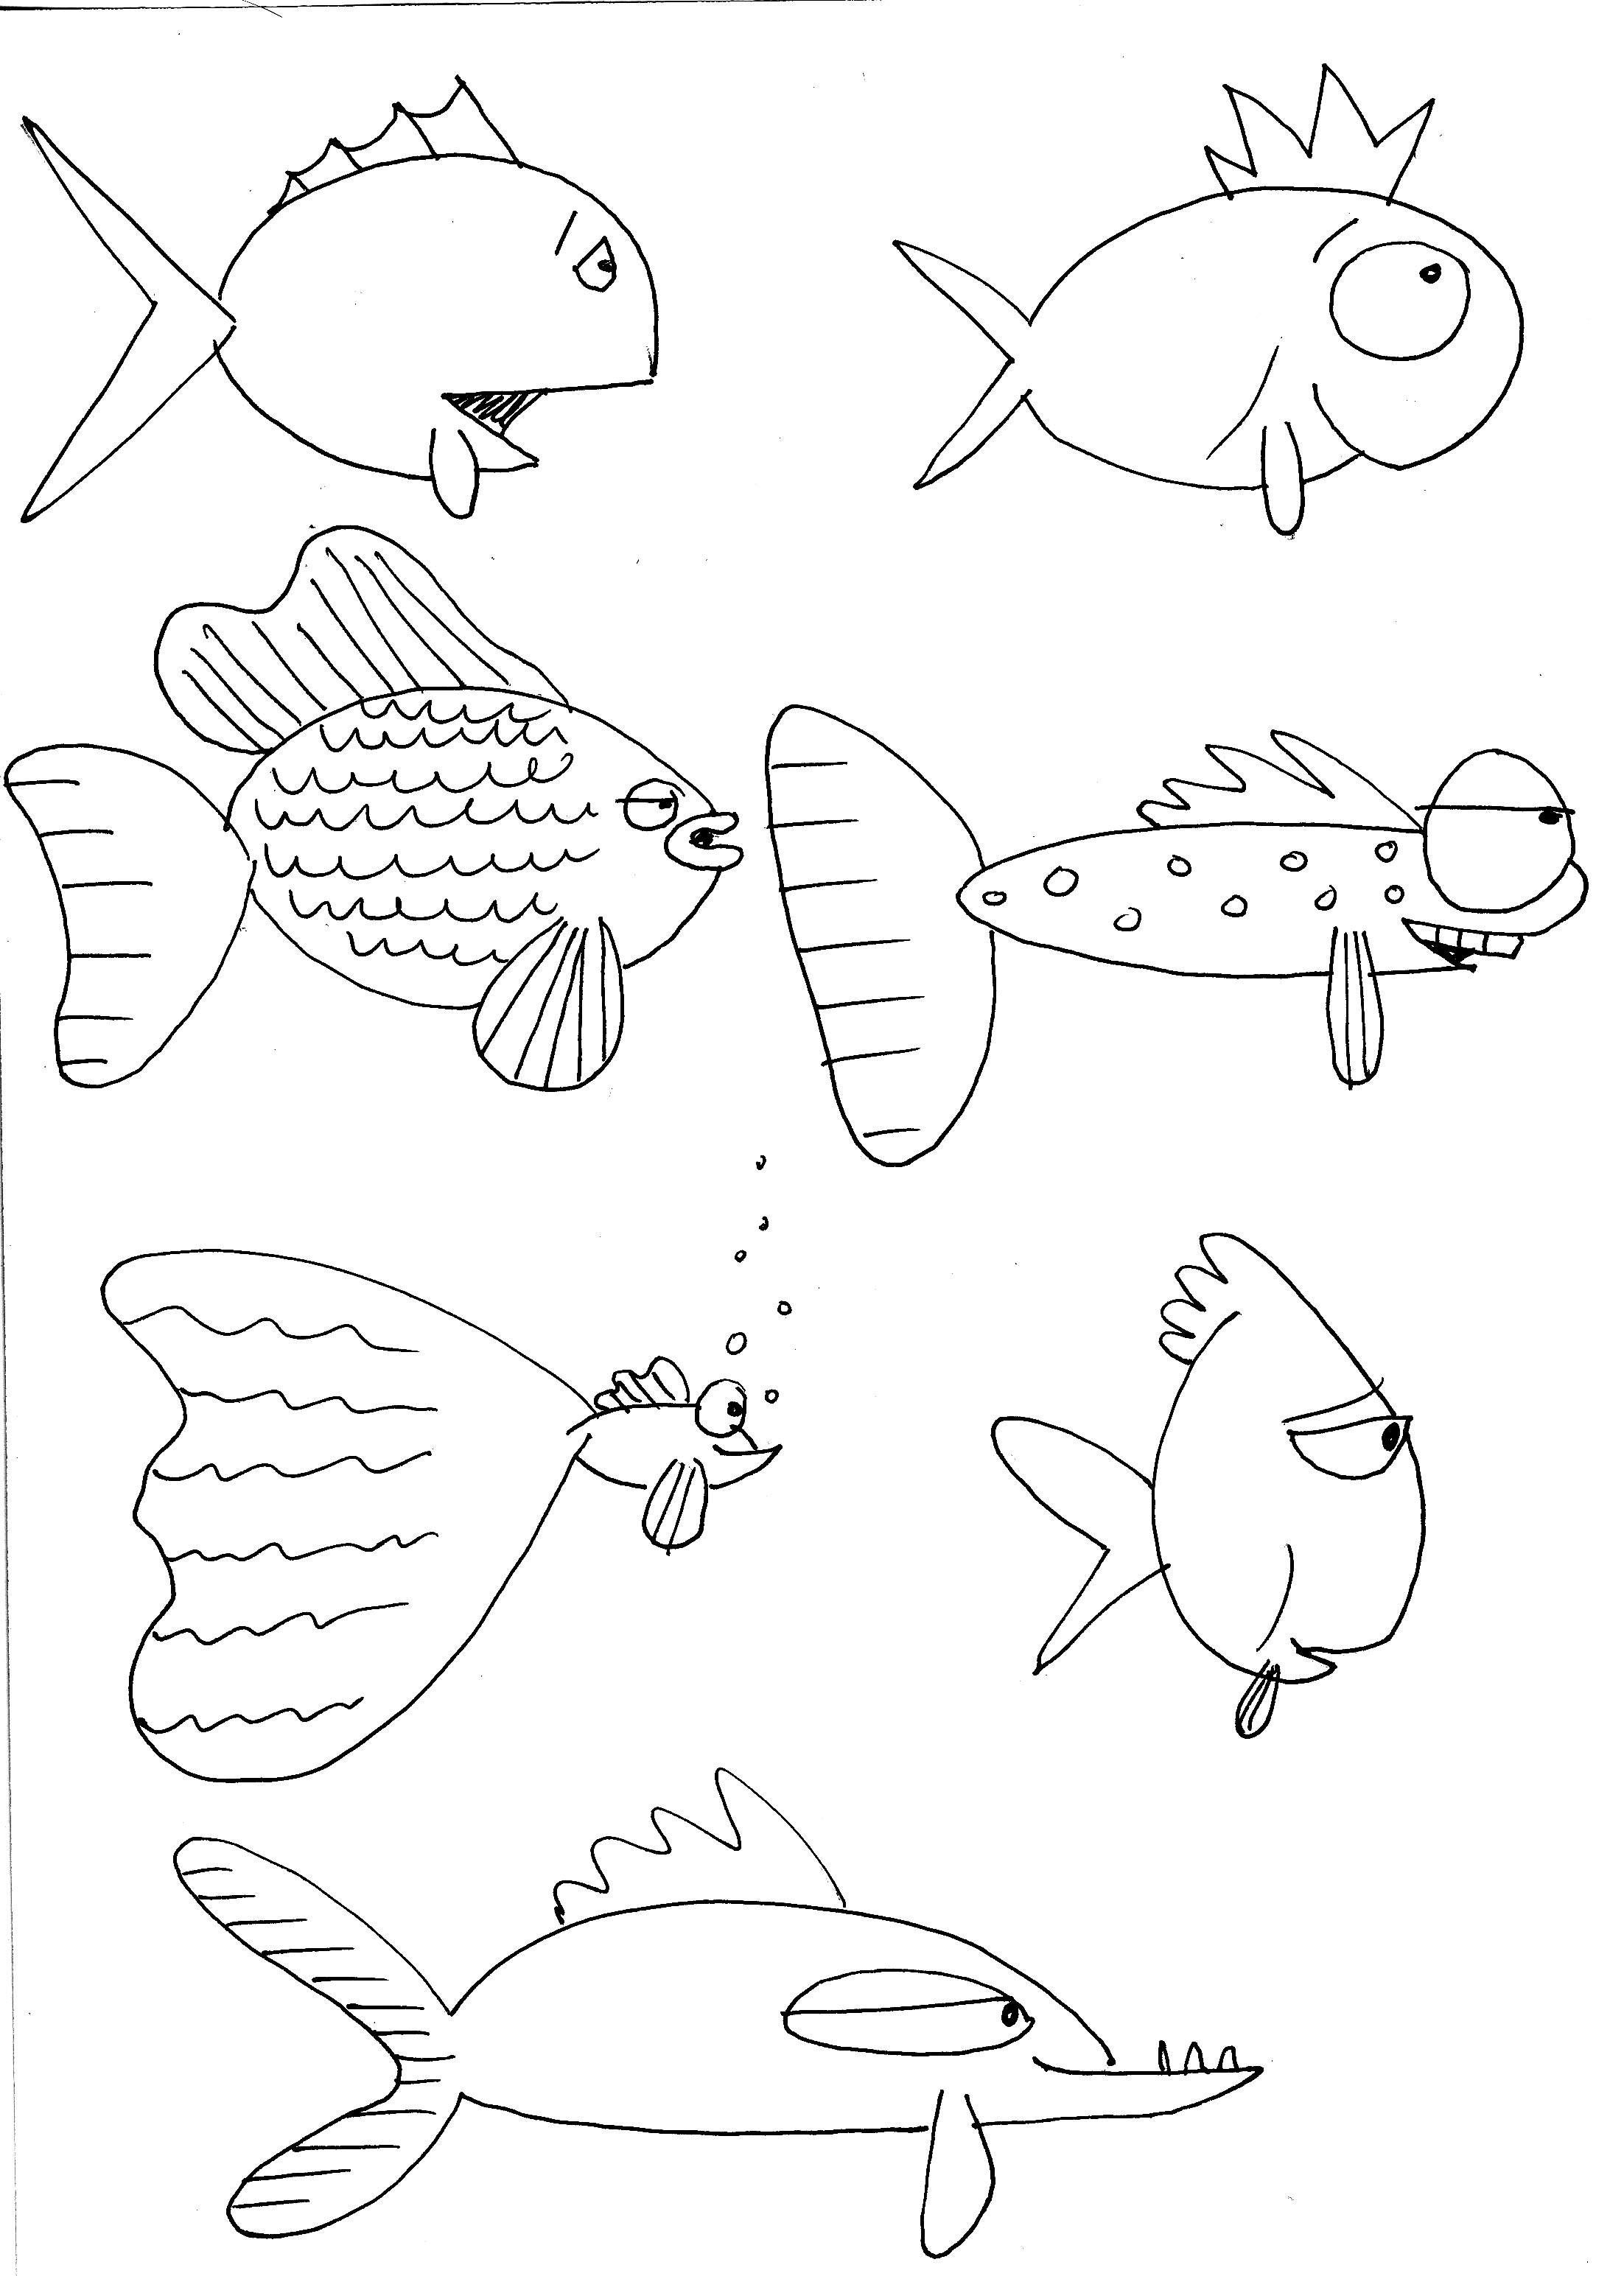 fishes drawing - photo #31